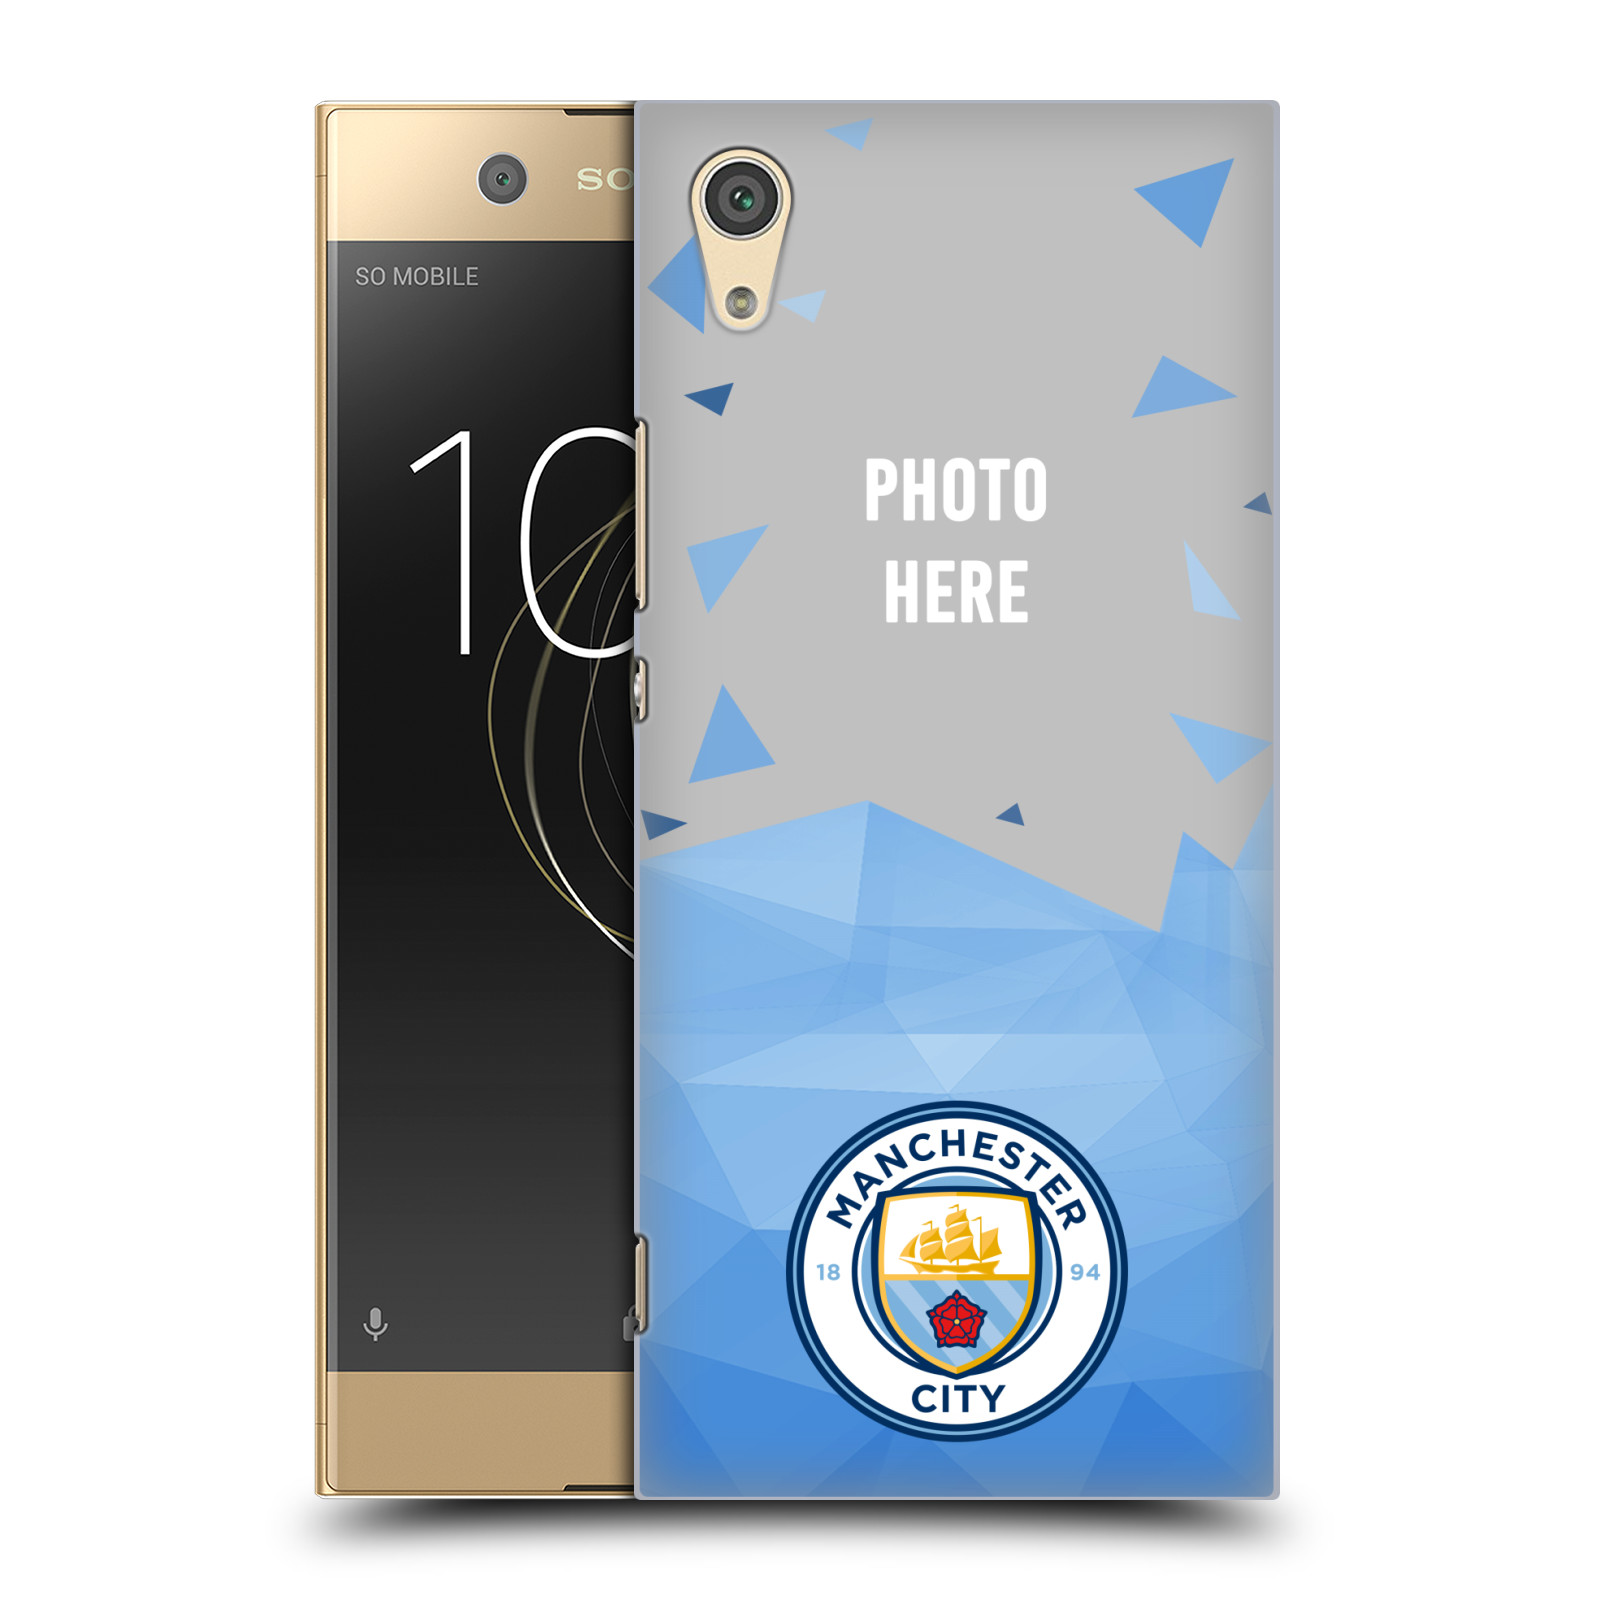 CUSTOM-MANCHESTER-CITY-MAN-CITY-FC-2017-18-KIT-E-LOGO-CASE-PER-SONY-TELEFONI-1